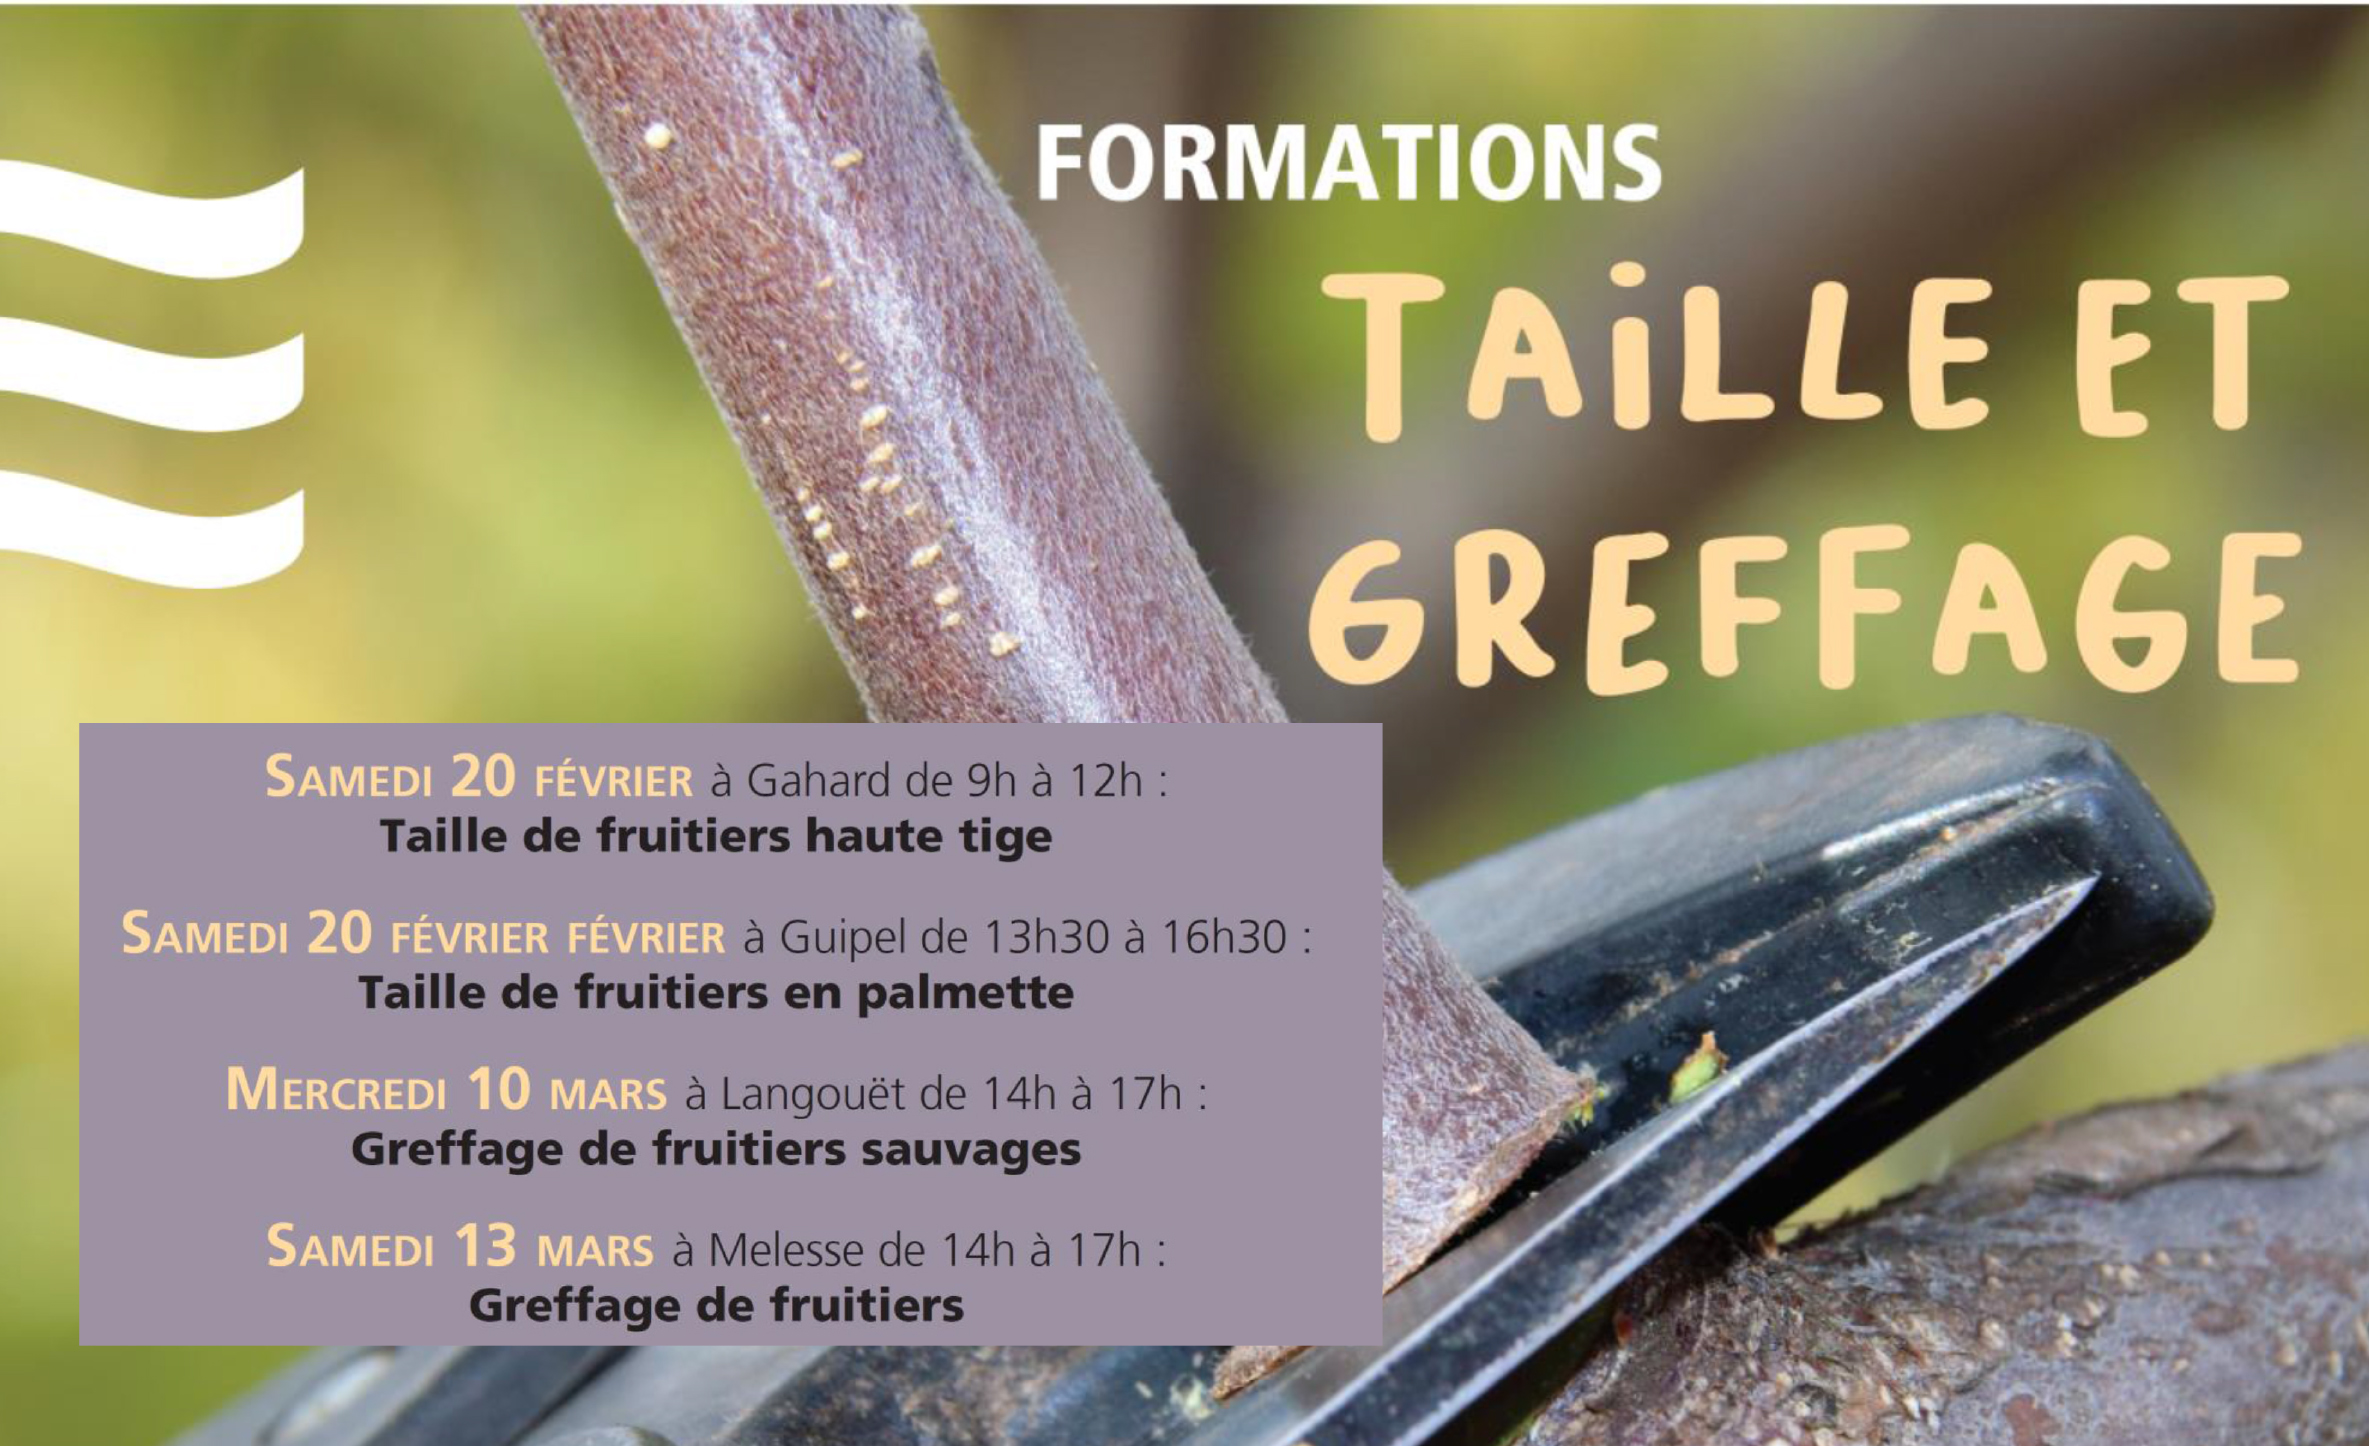 Formation taille et greffage